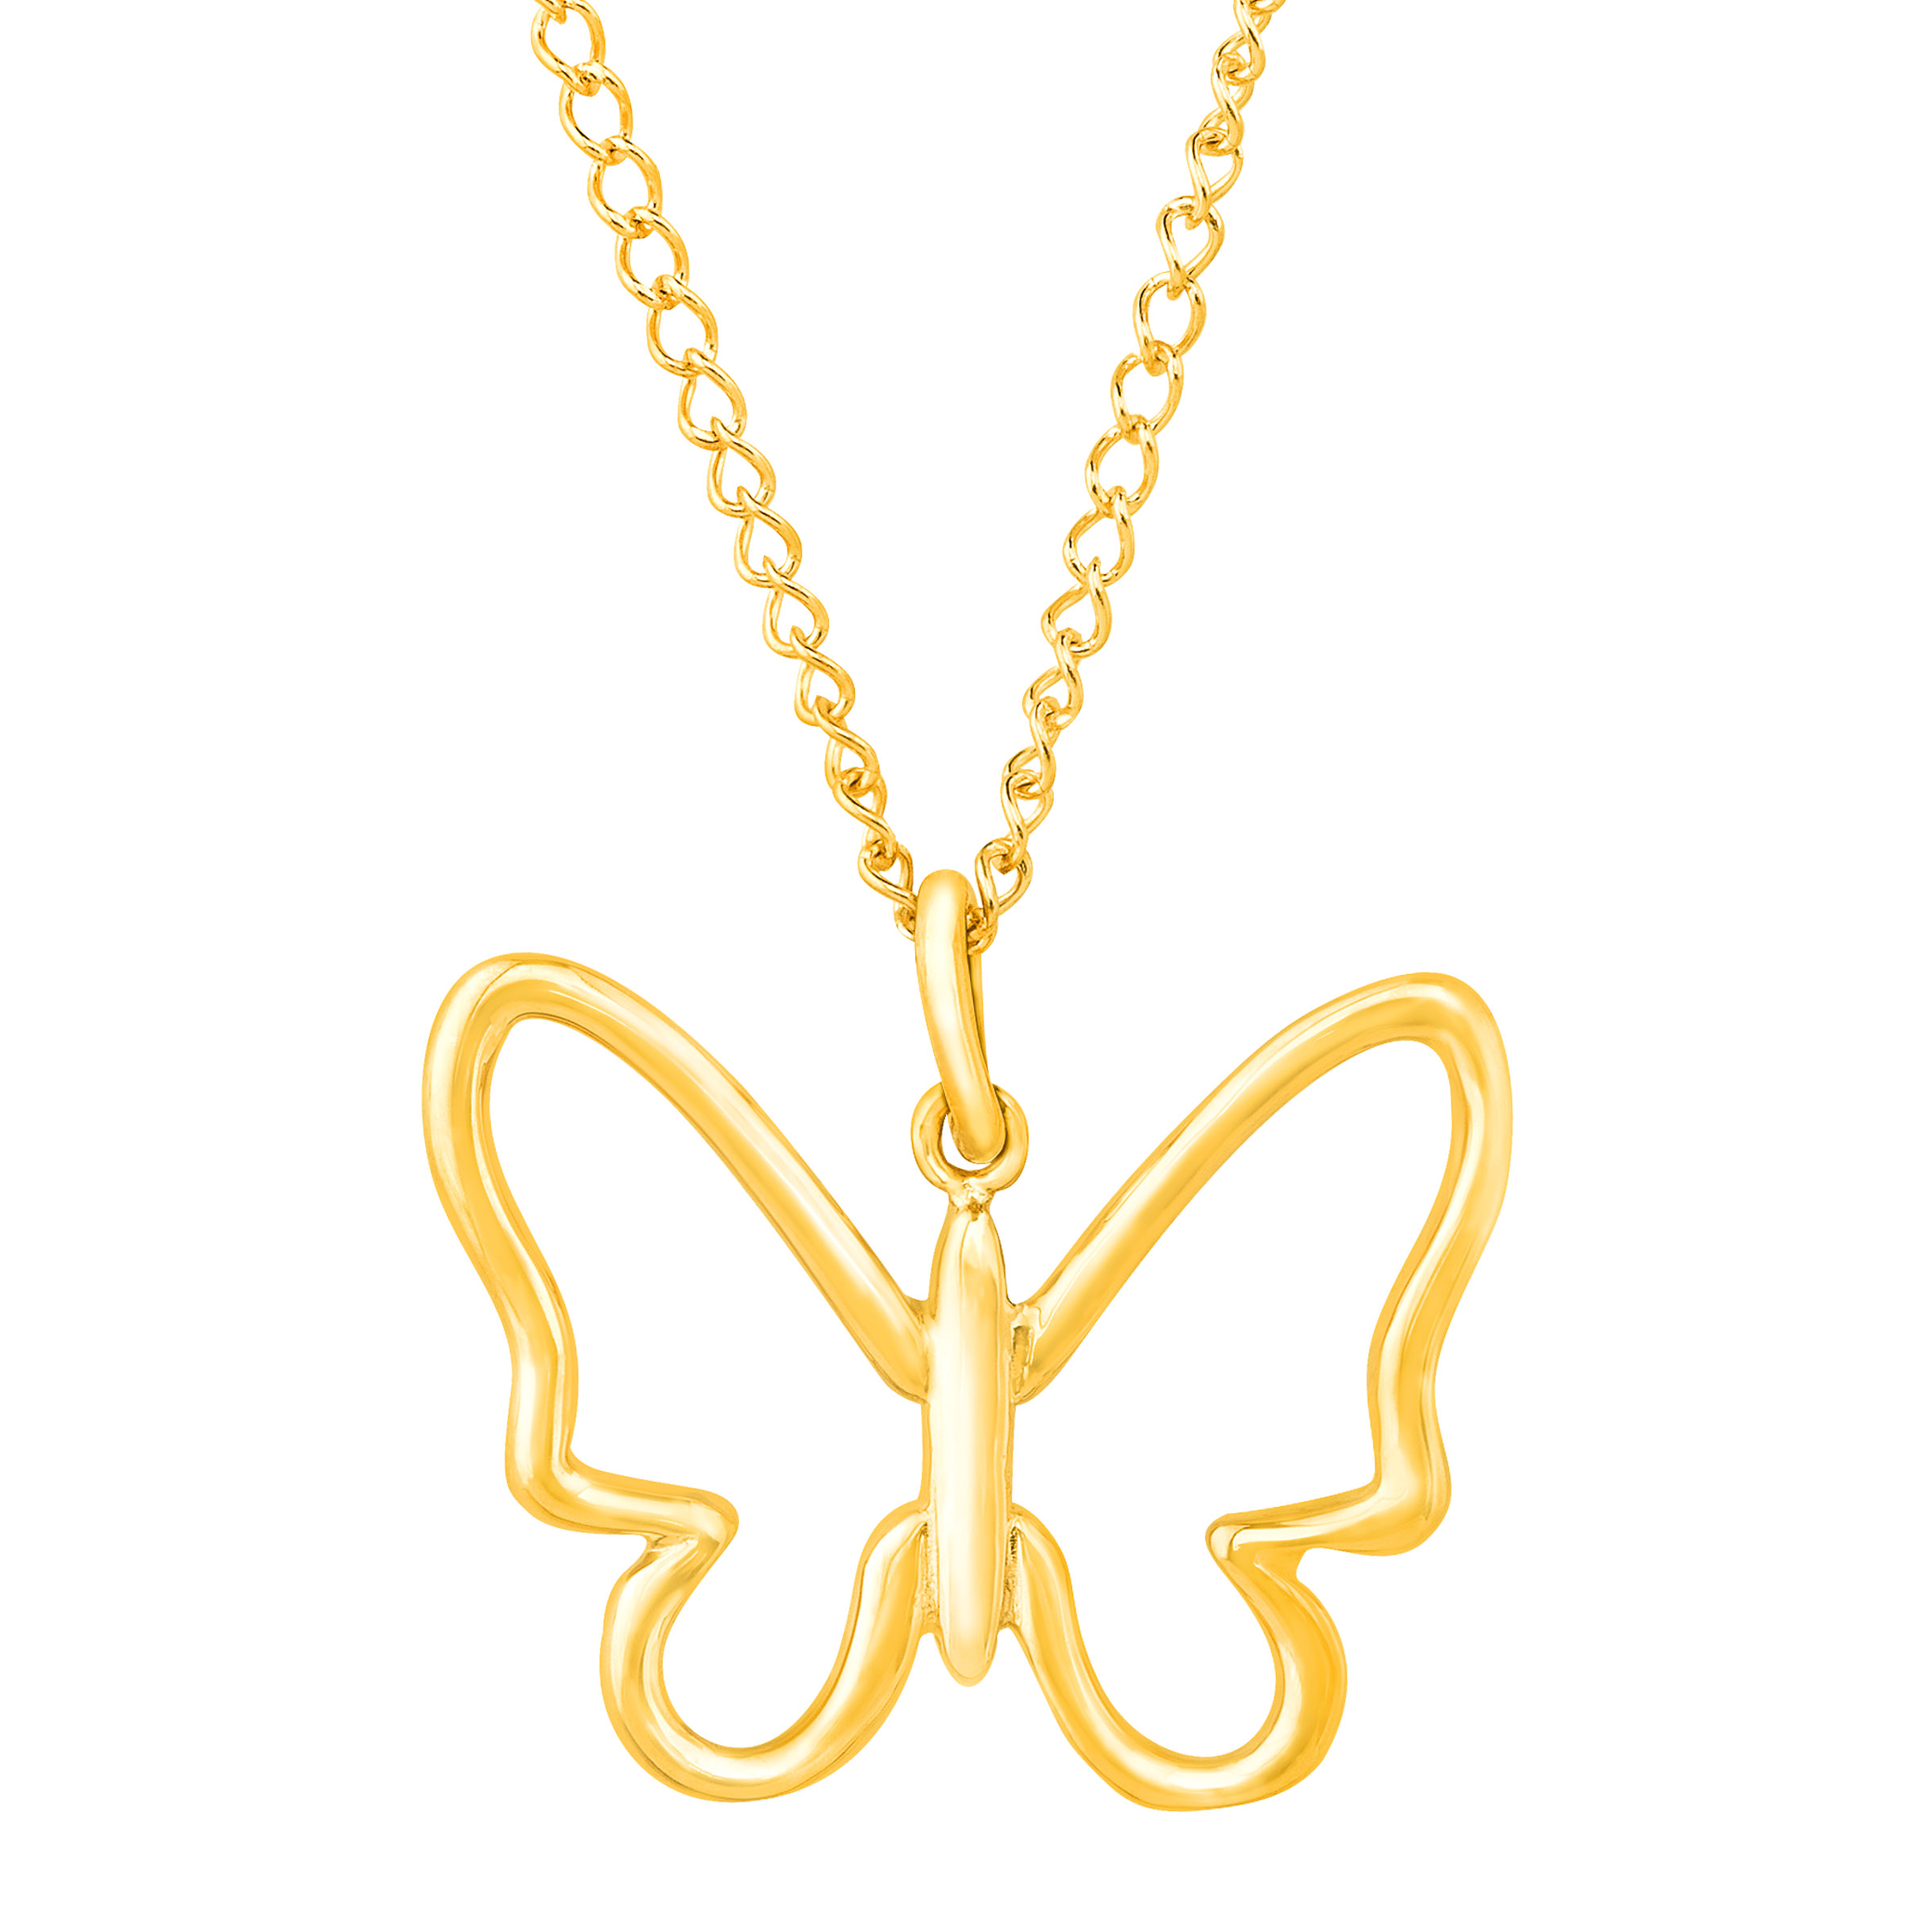 Richline Simply Gold Silhouette Butterfly Pendant Necklac...